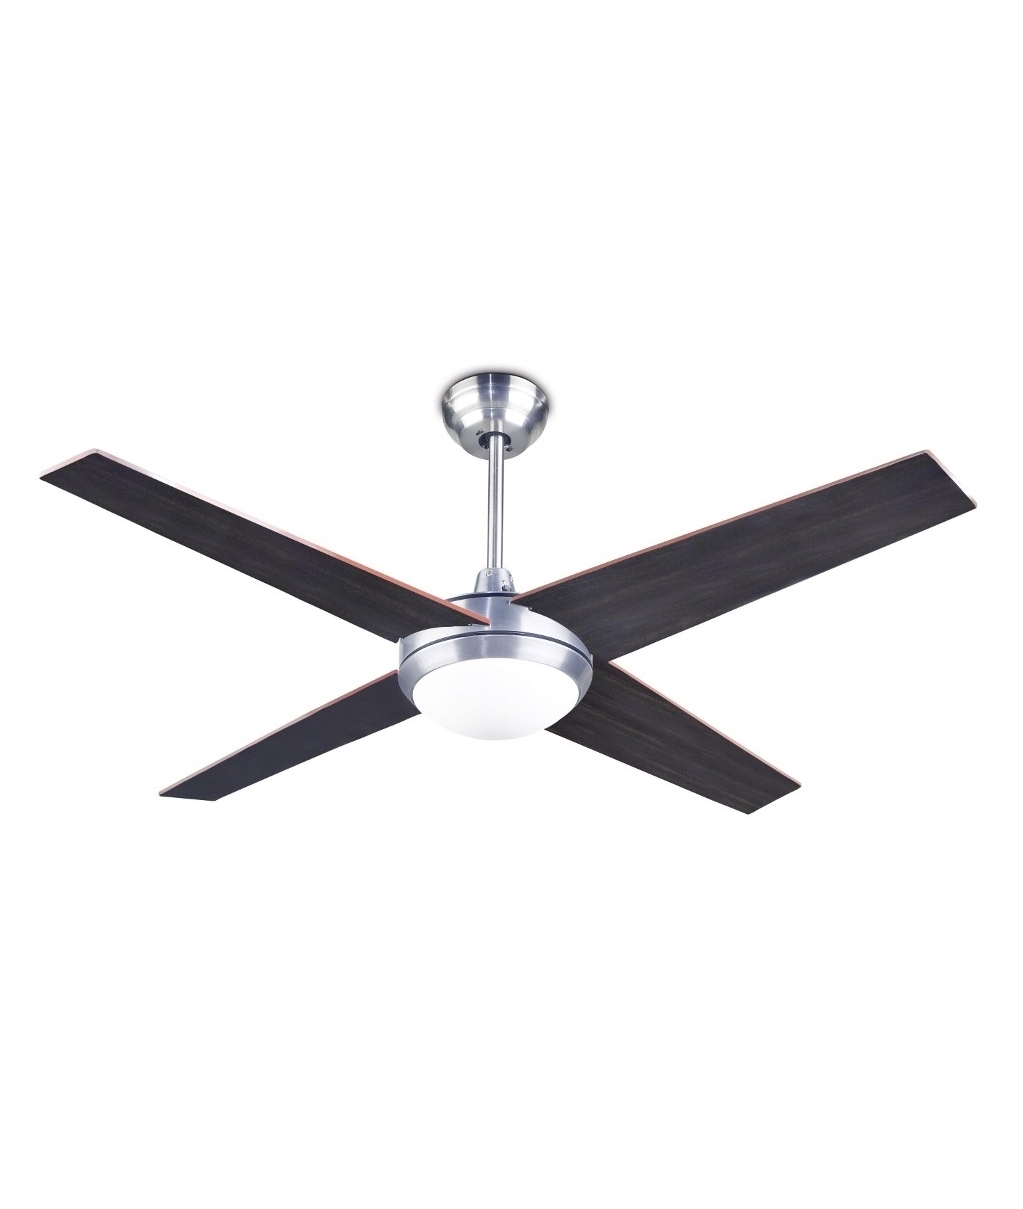 Modern And Trendy Ceiling Fan With Reversible Blades And Light